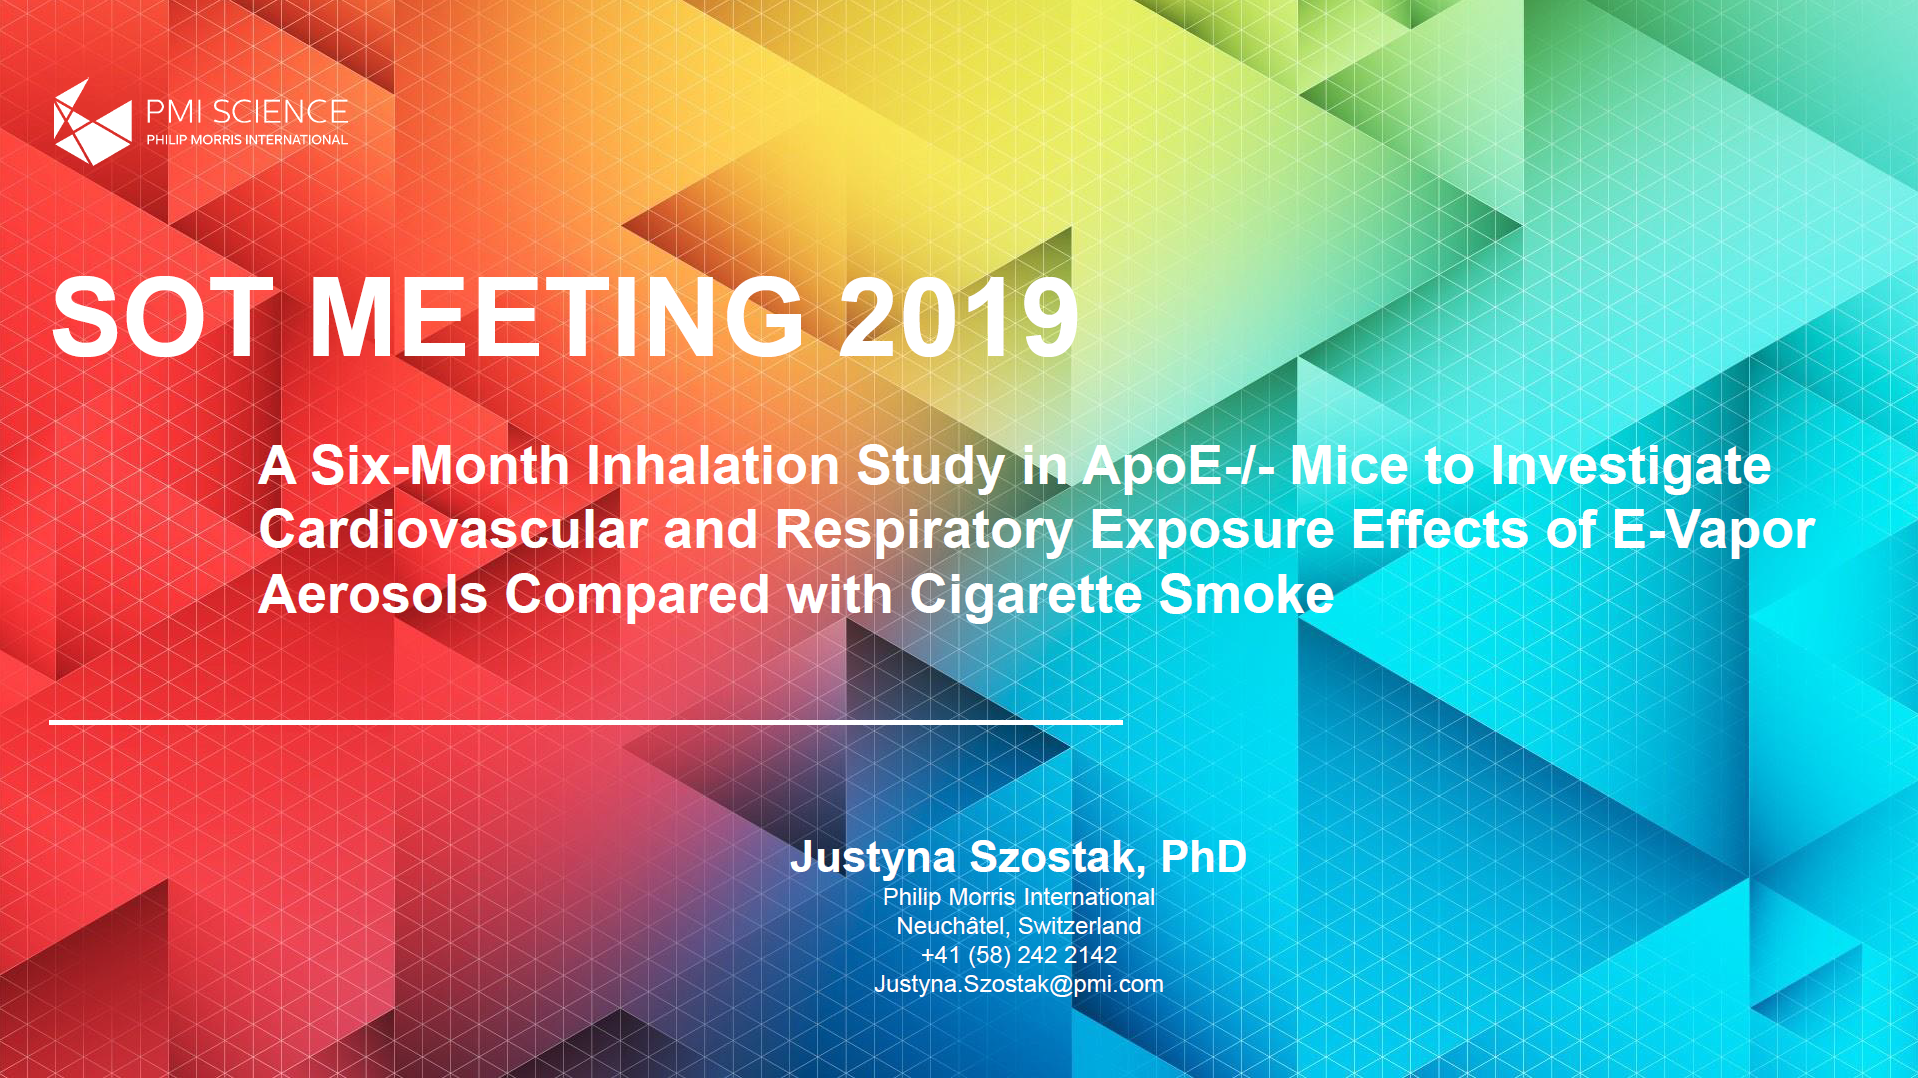 J. Szostak_A six-month inhalation study in ApoE-/- mice to investigate cardiovascular and respiratory exposure effects of e-vapor aerosols compared with cigarette smoke